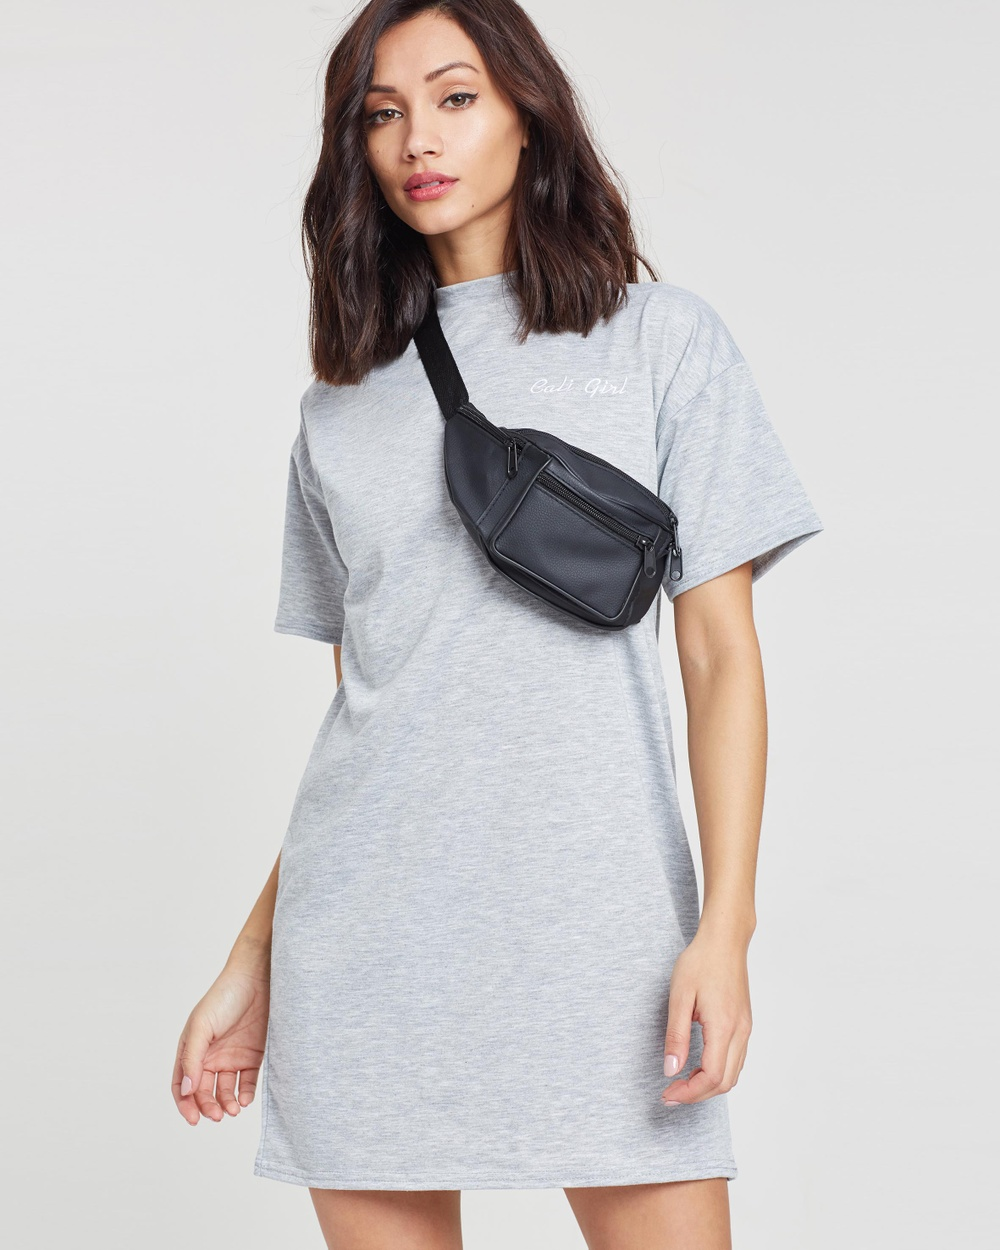 Missguided Oversized T Shirt Dress Dresses Grey Oversized T-Shirt Dress